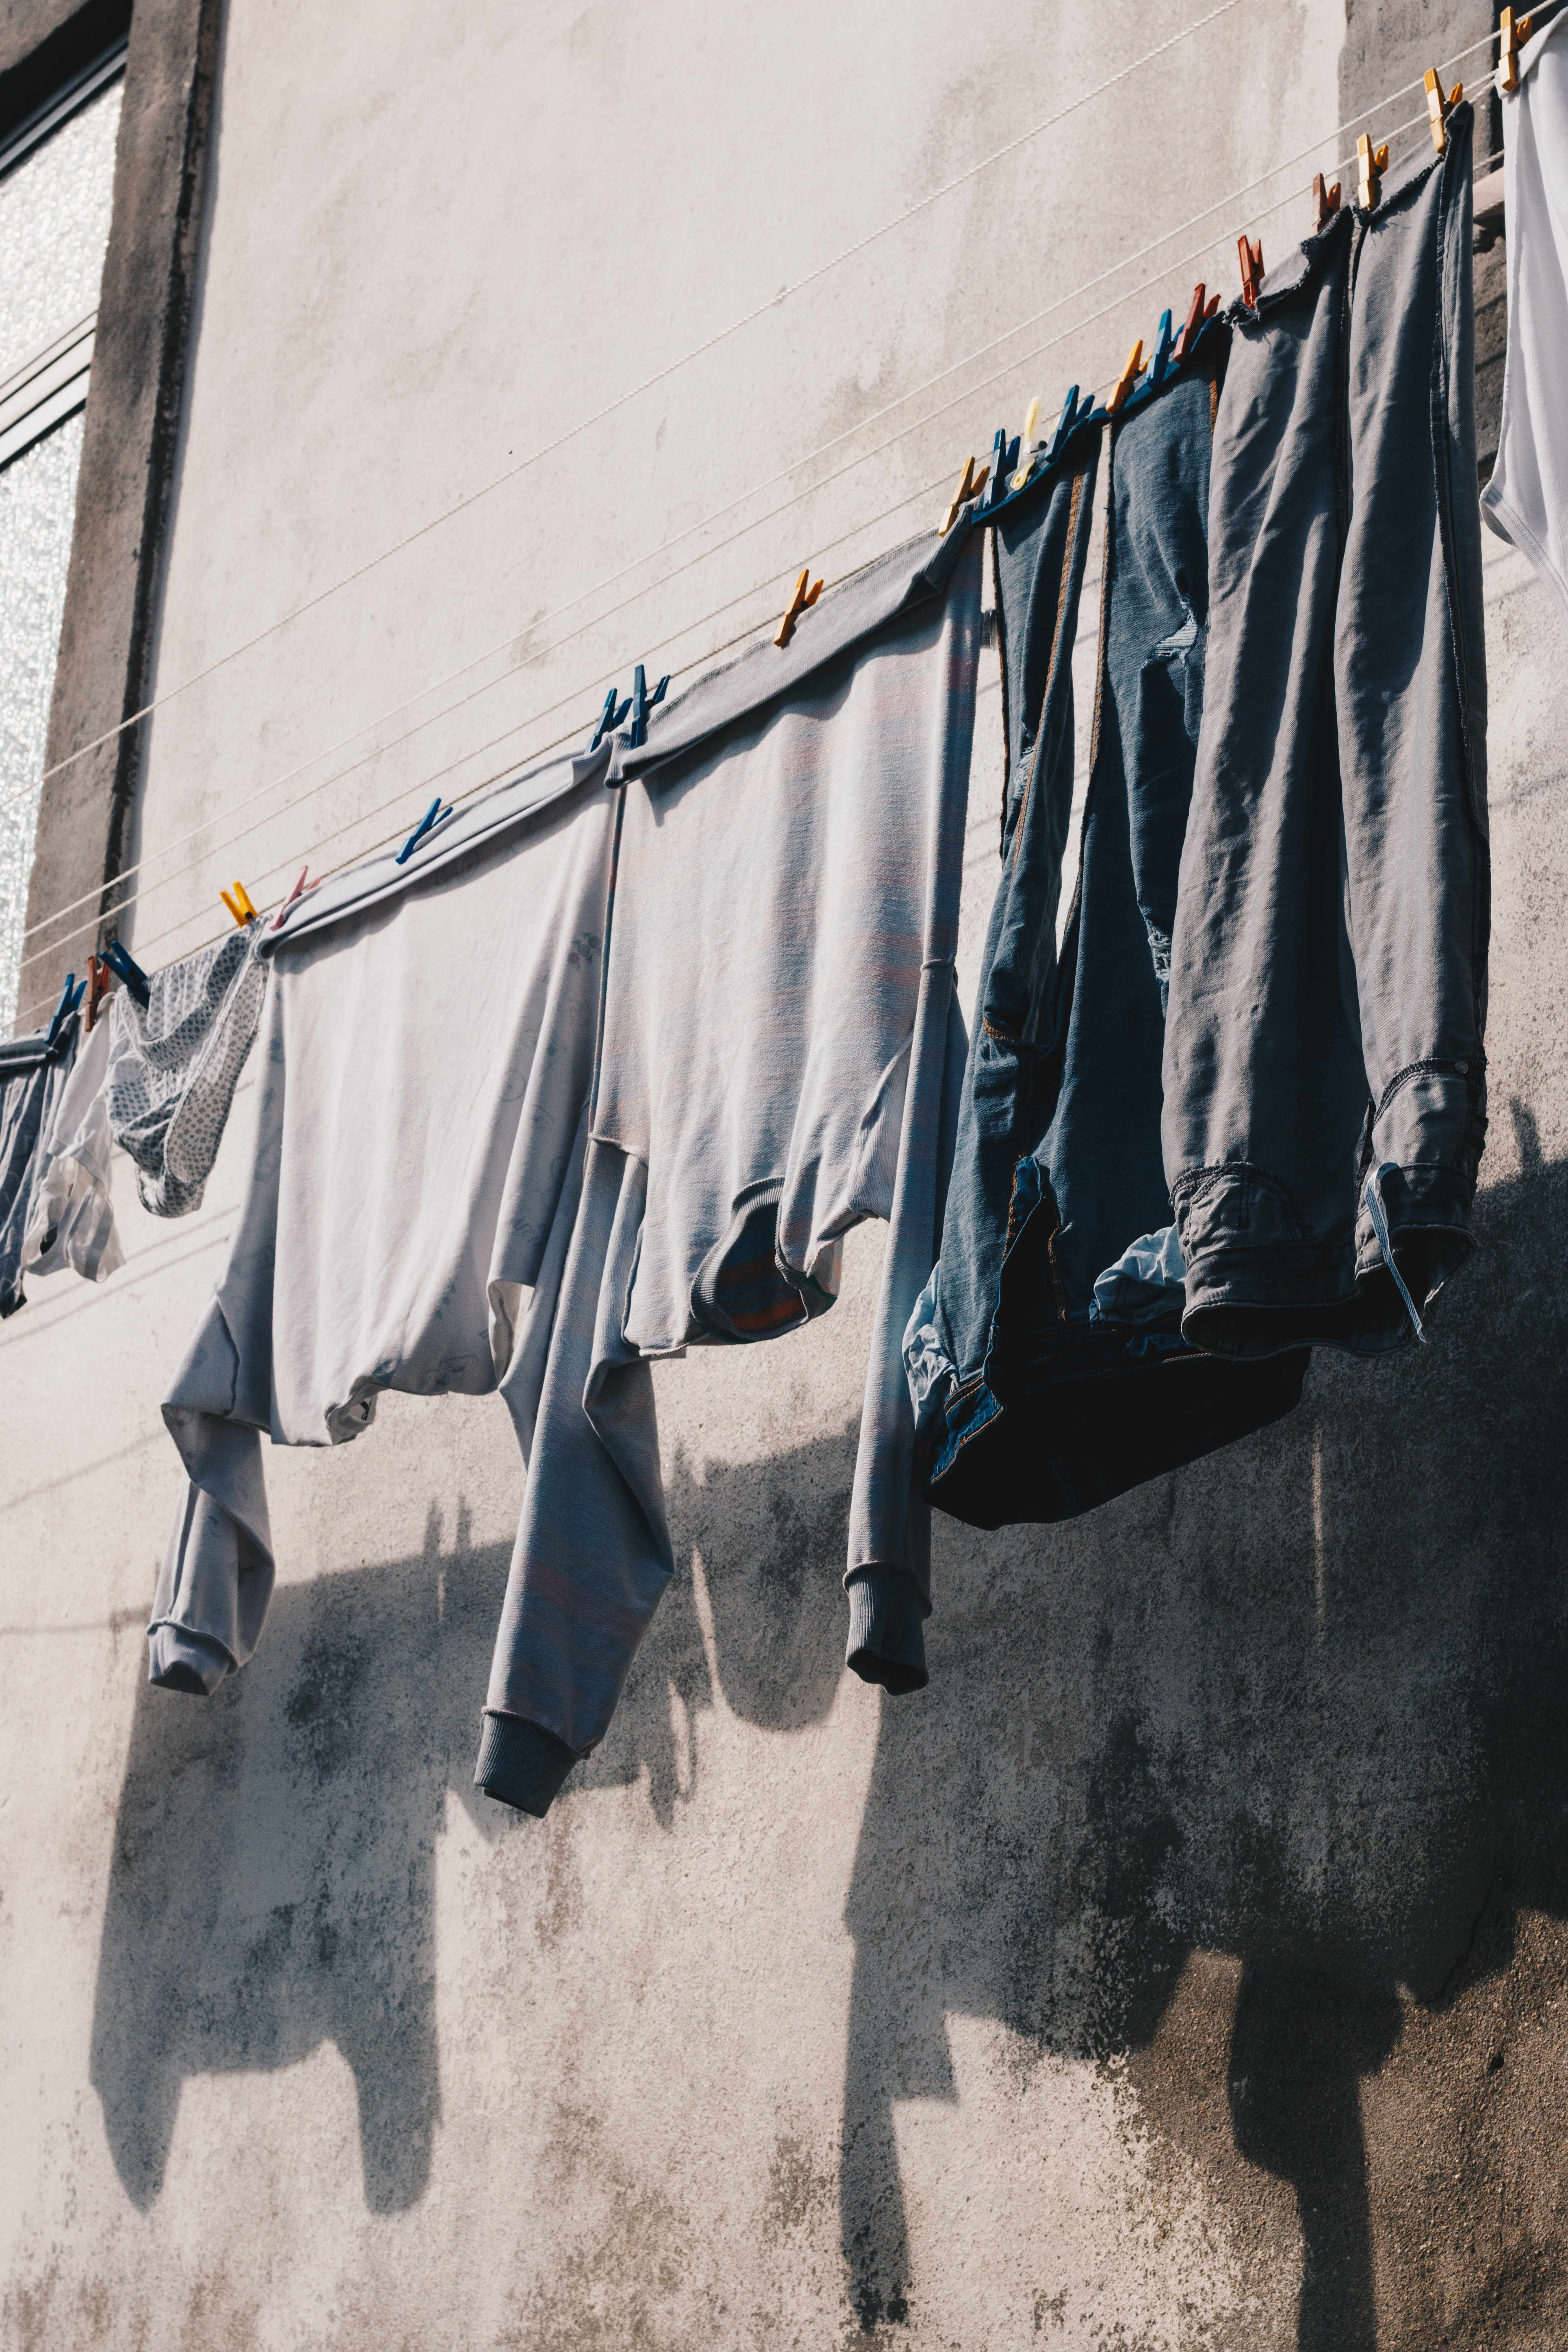 four hanged clothes